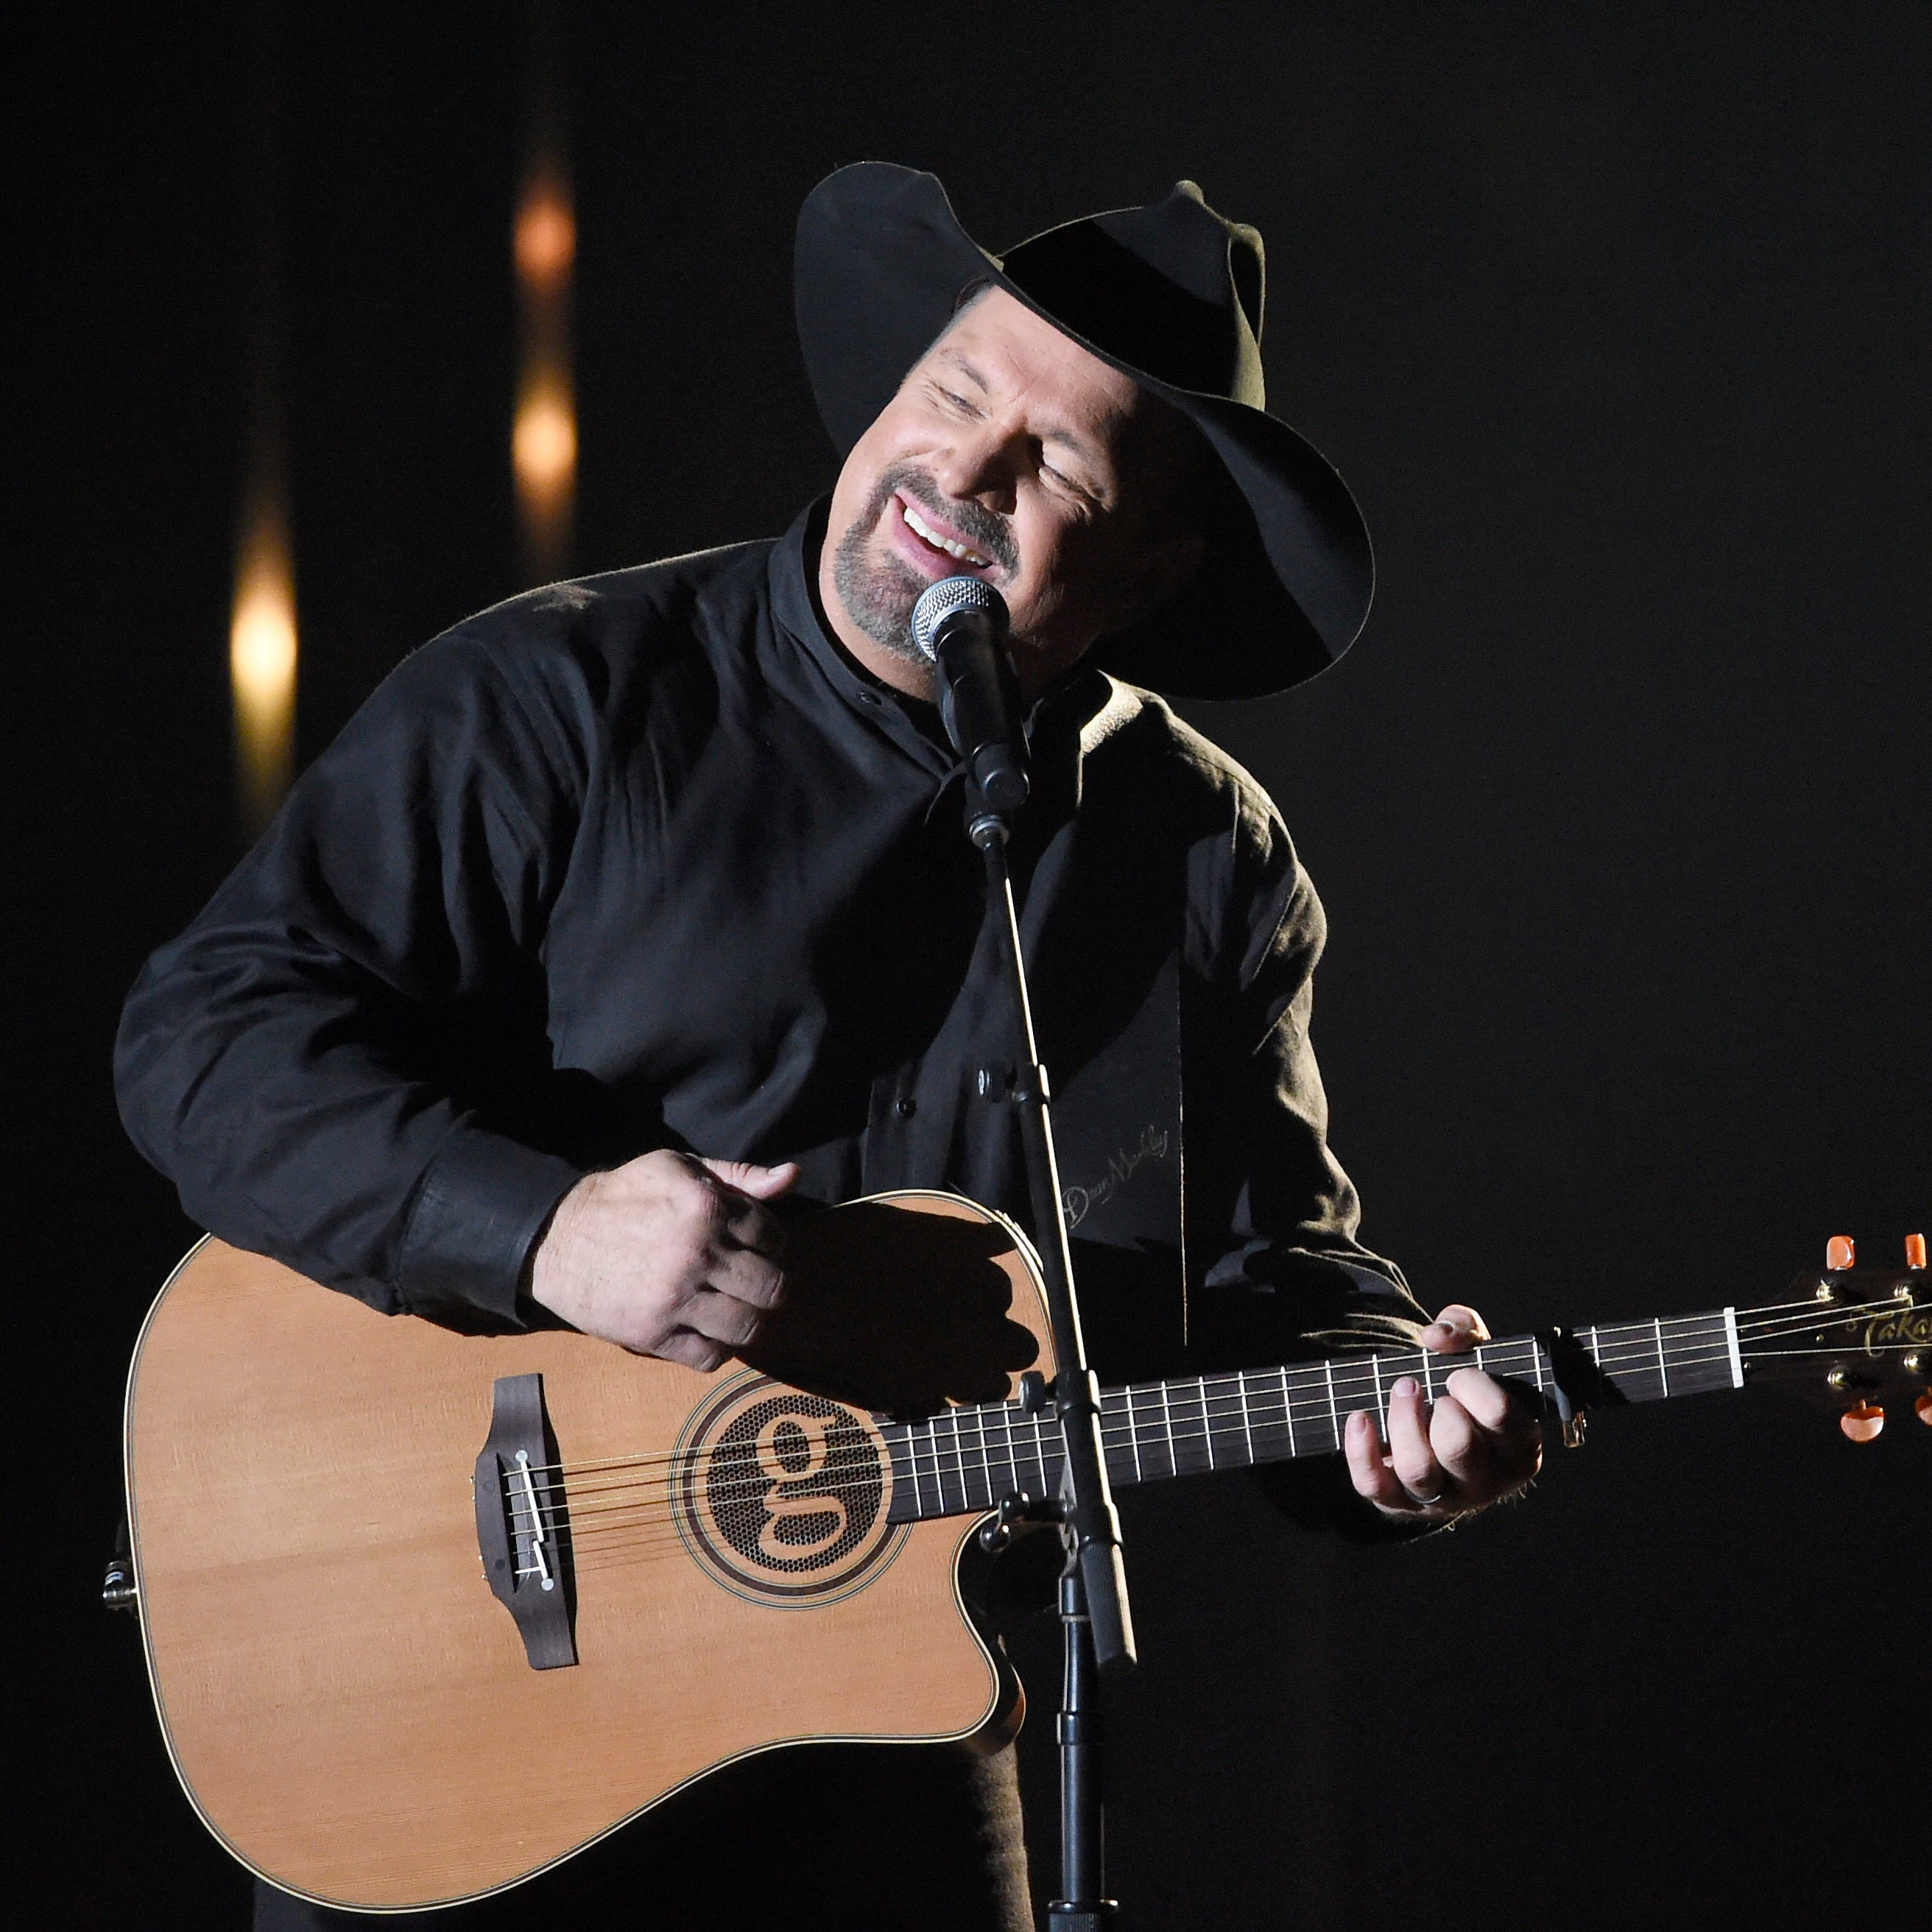 Garth Brooks, Ricky Skaggs, Lorrie Morgan more honor Keith Whitley on 30th anniversary of death